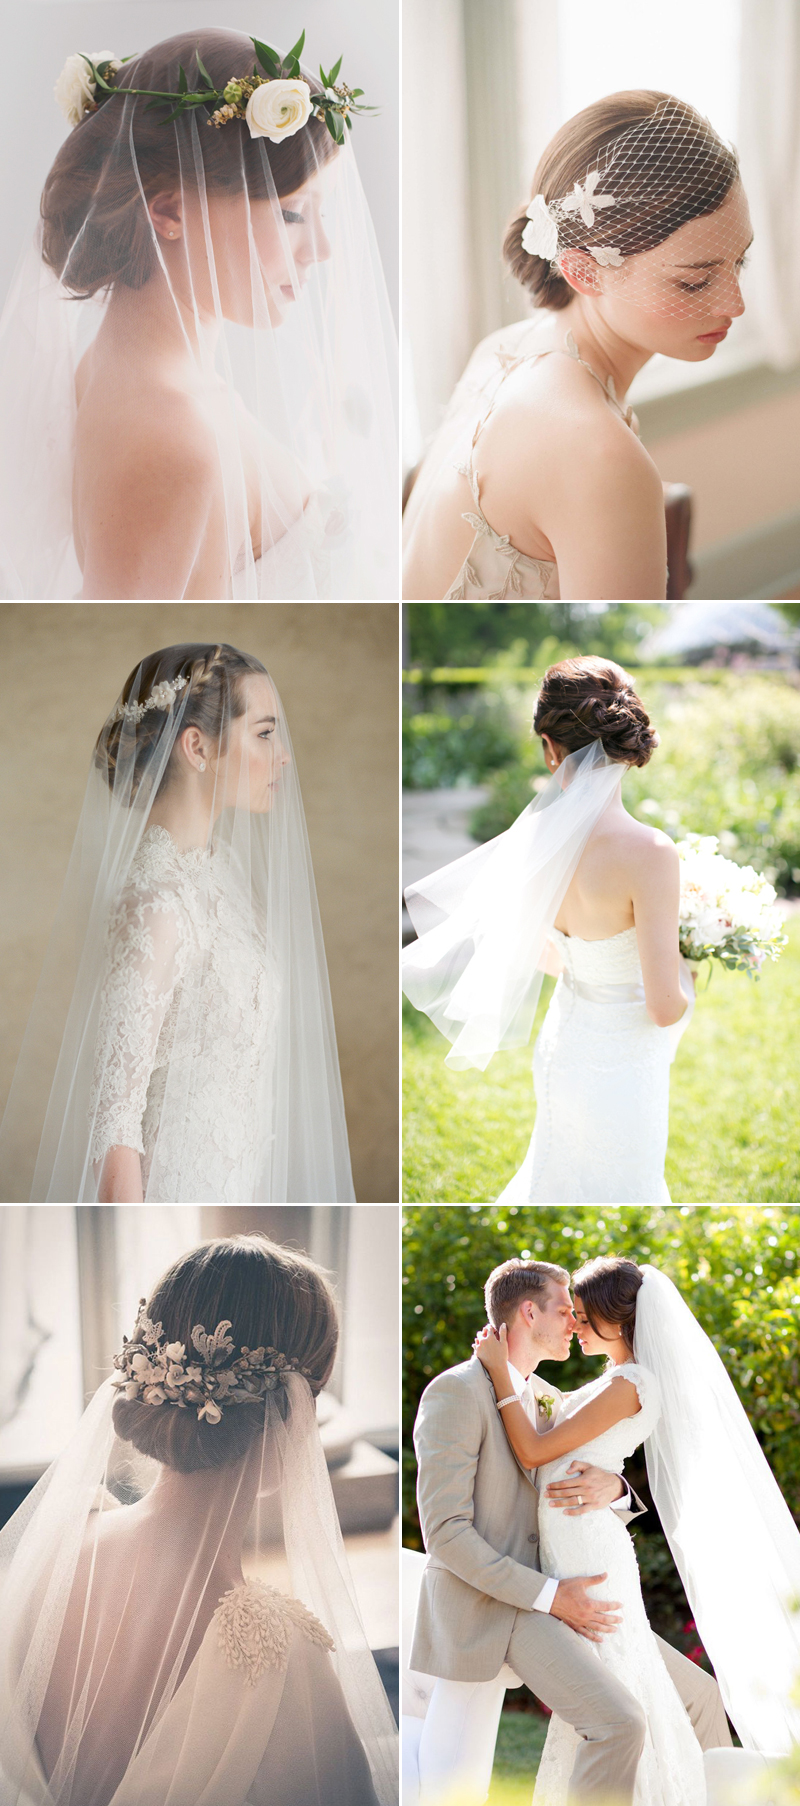 Chic bridal hairstyles that look good with veils praise wedding hairveil01 lowchignon junglespirit Images